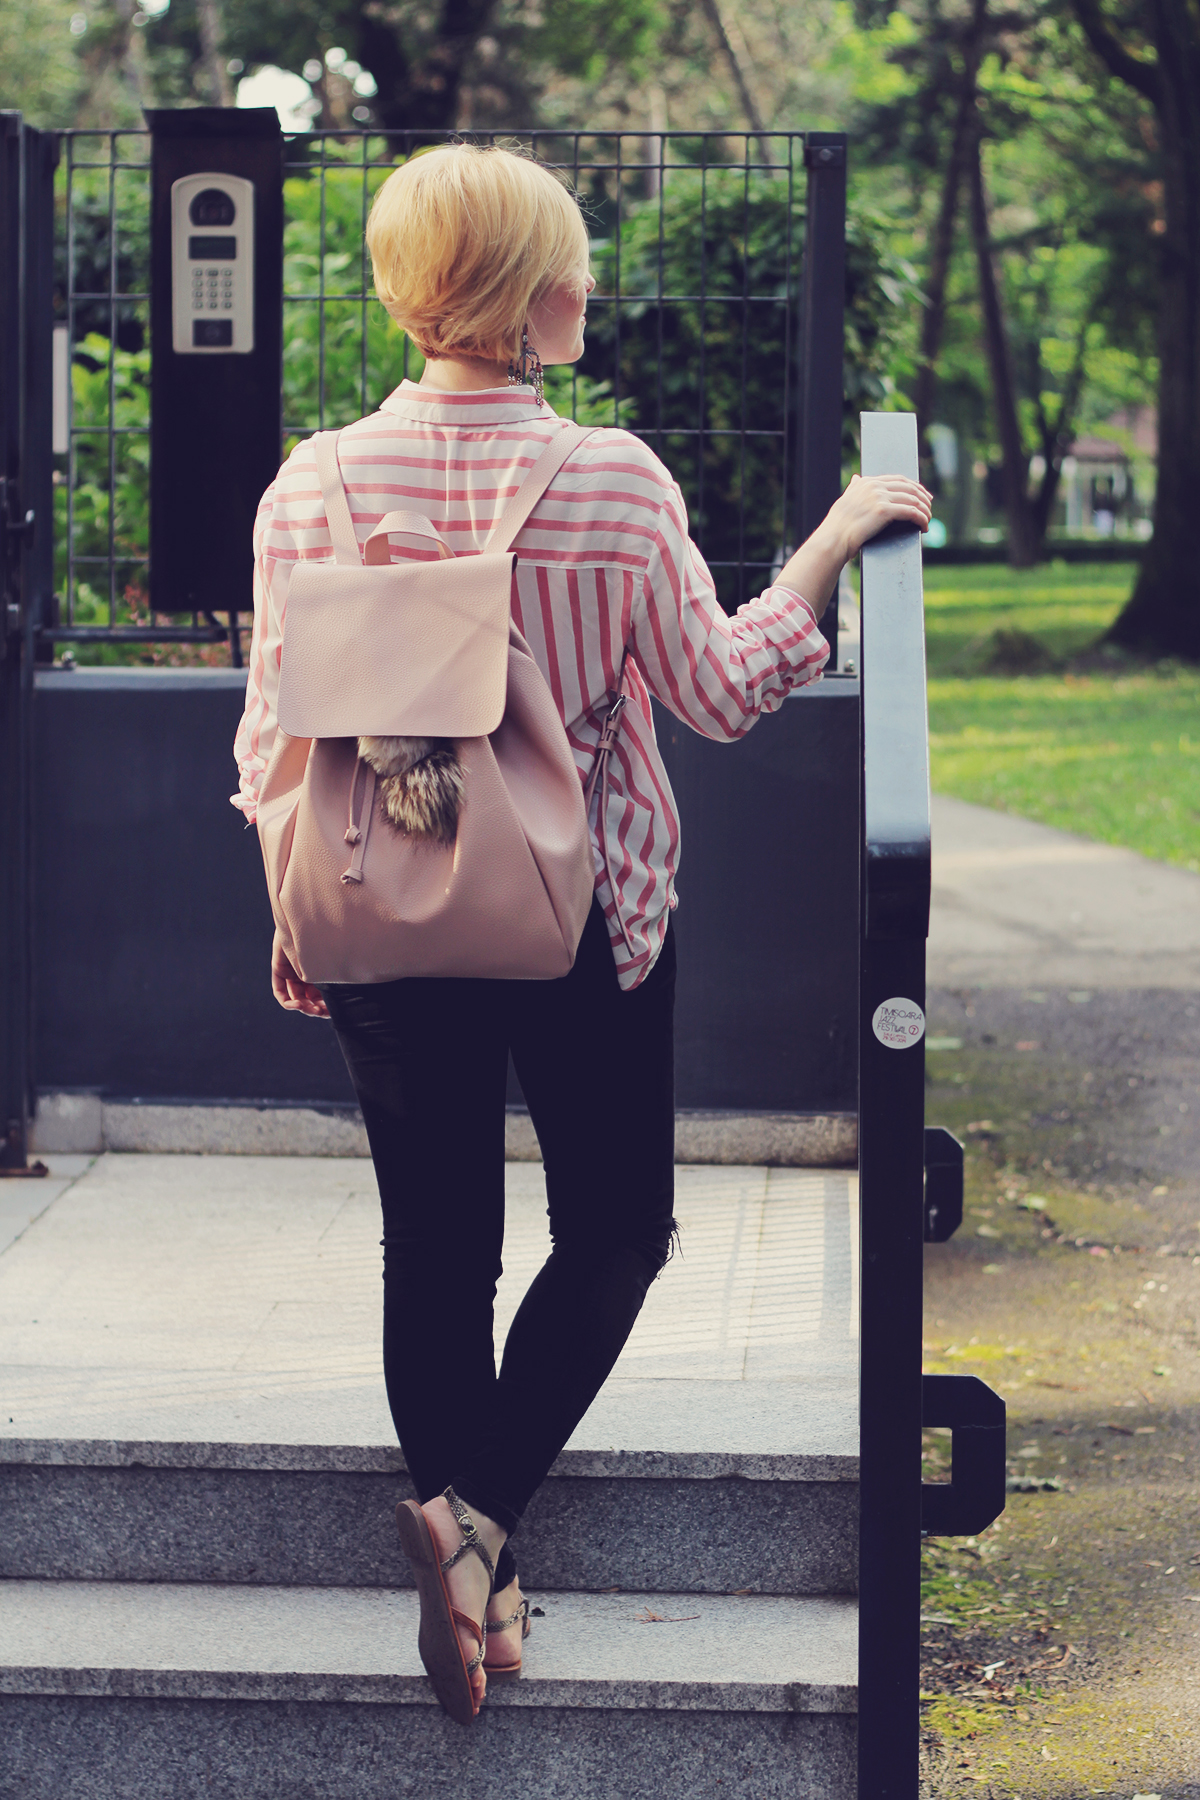 pink backpack and pink stripe shirt with sandals